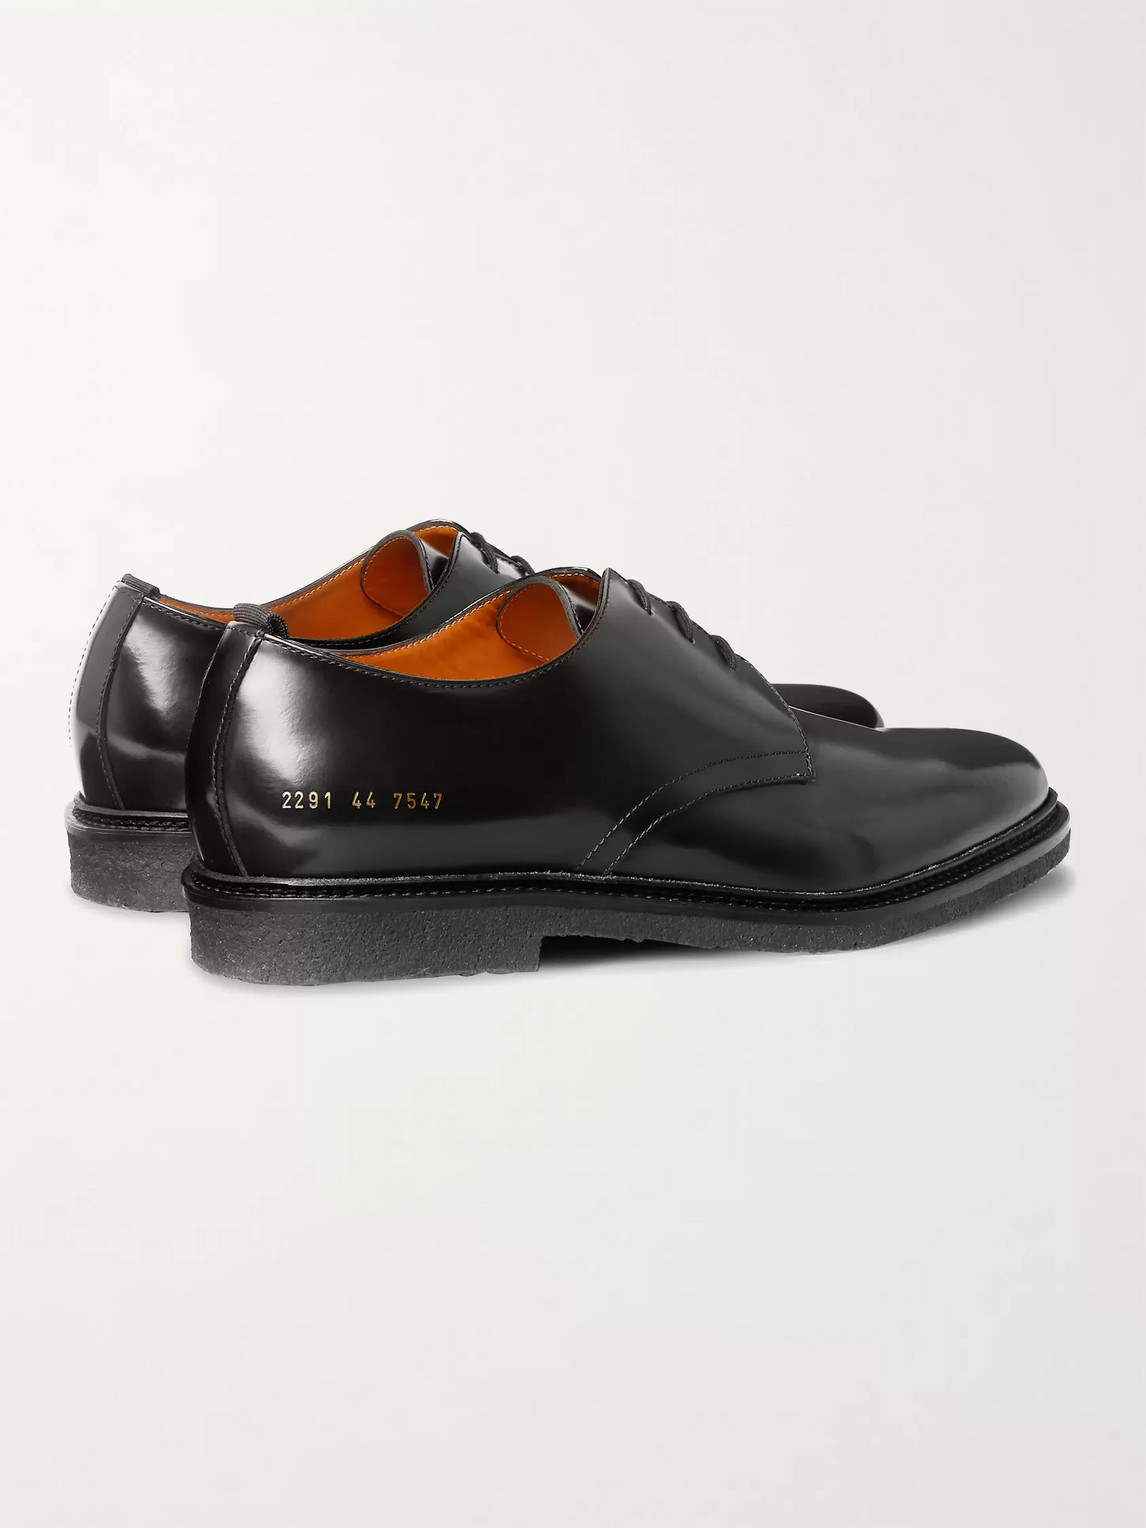 COMMON PROJECTS Leathers LEATHER DERBY SHOES